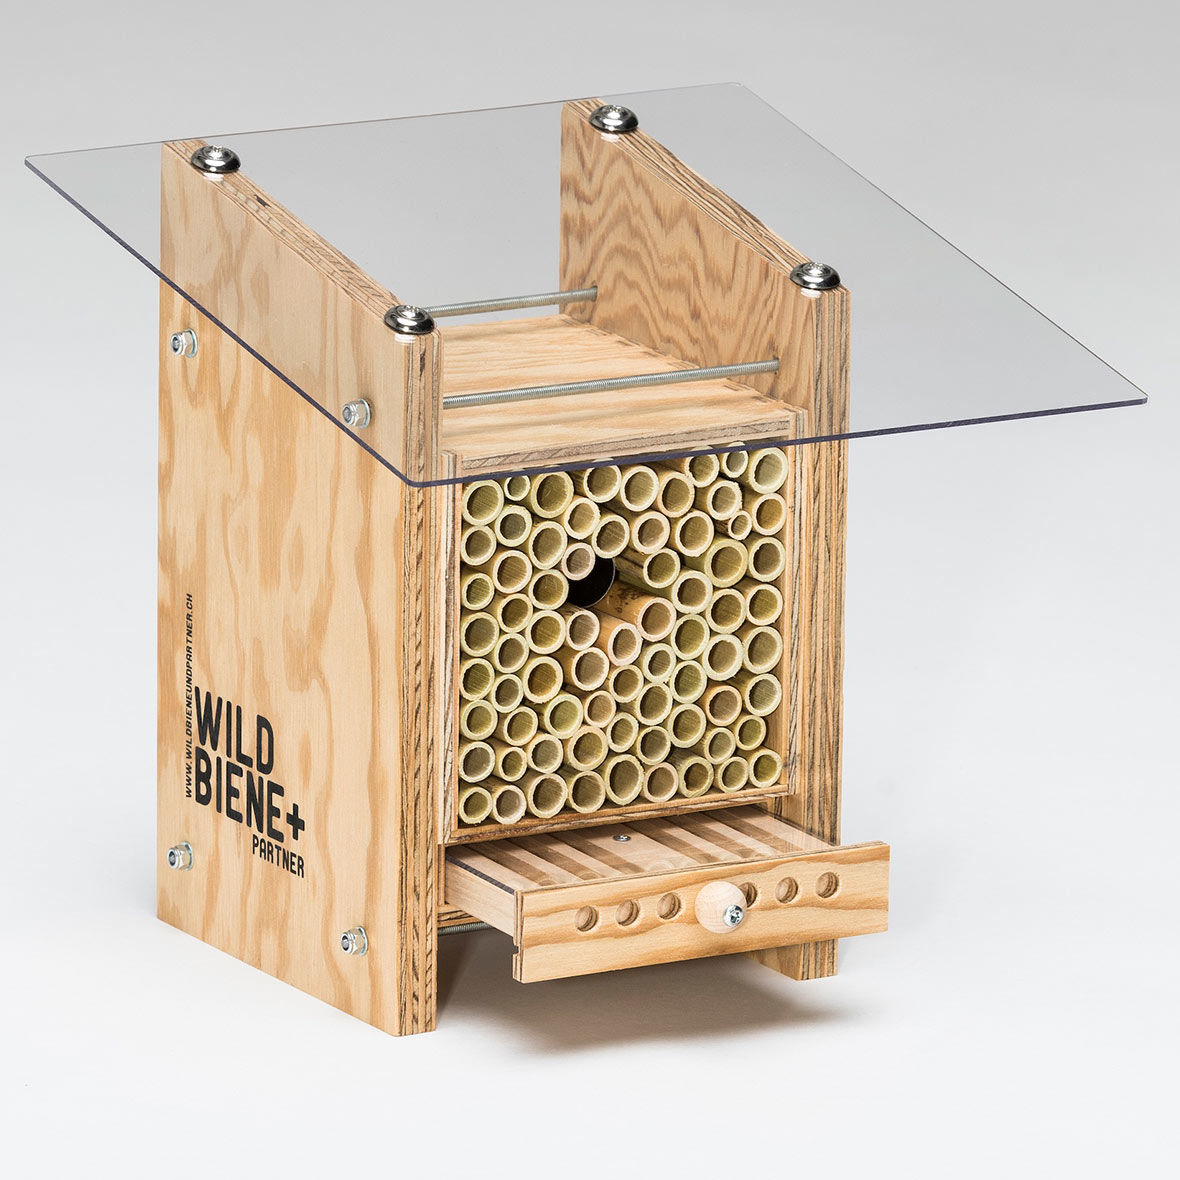 BeeHome Observer